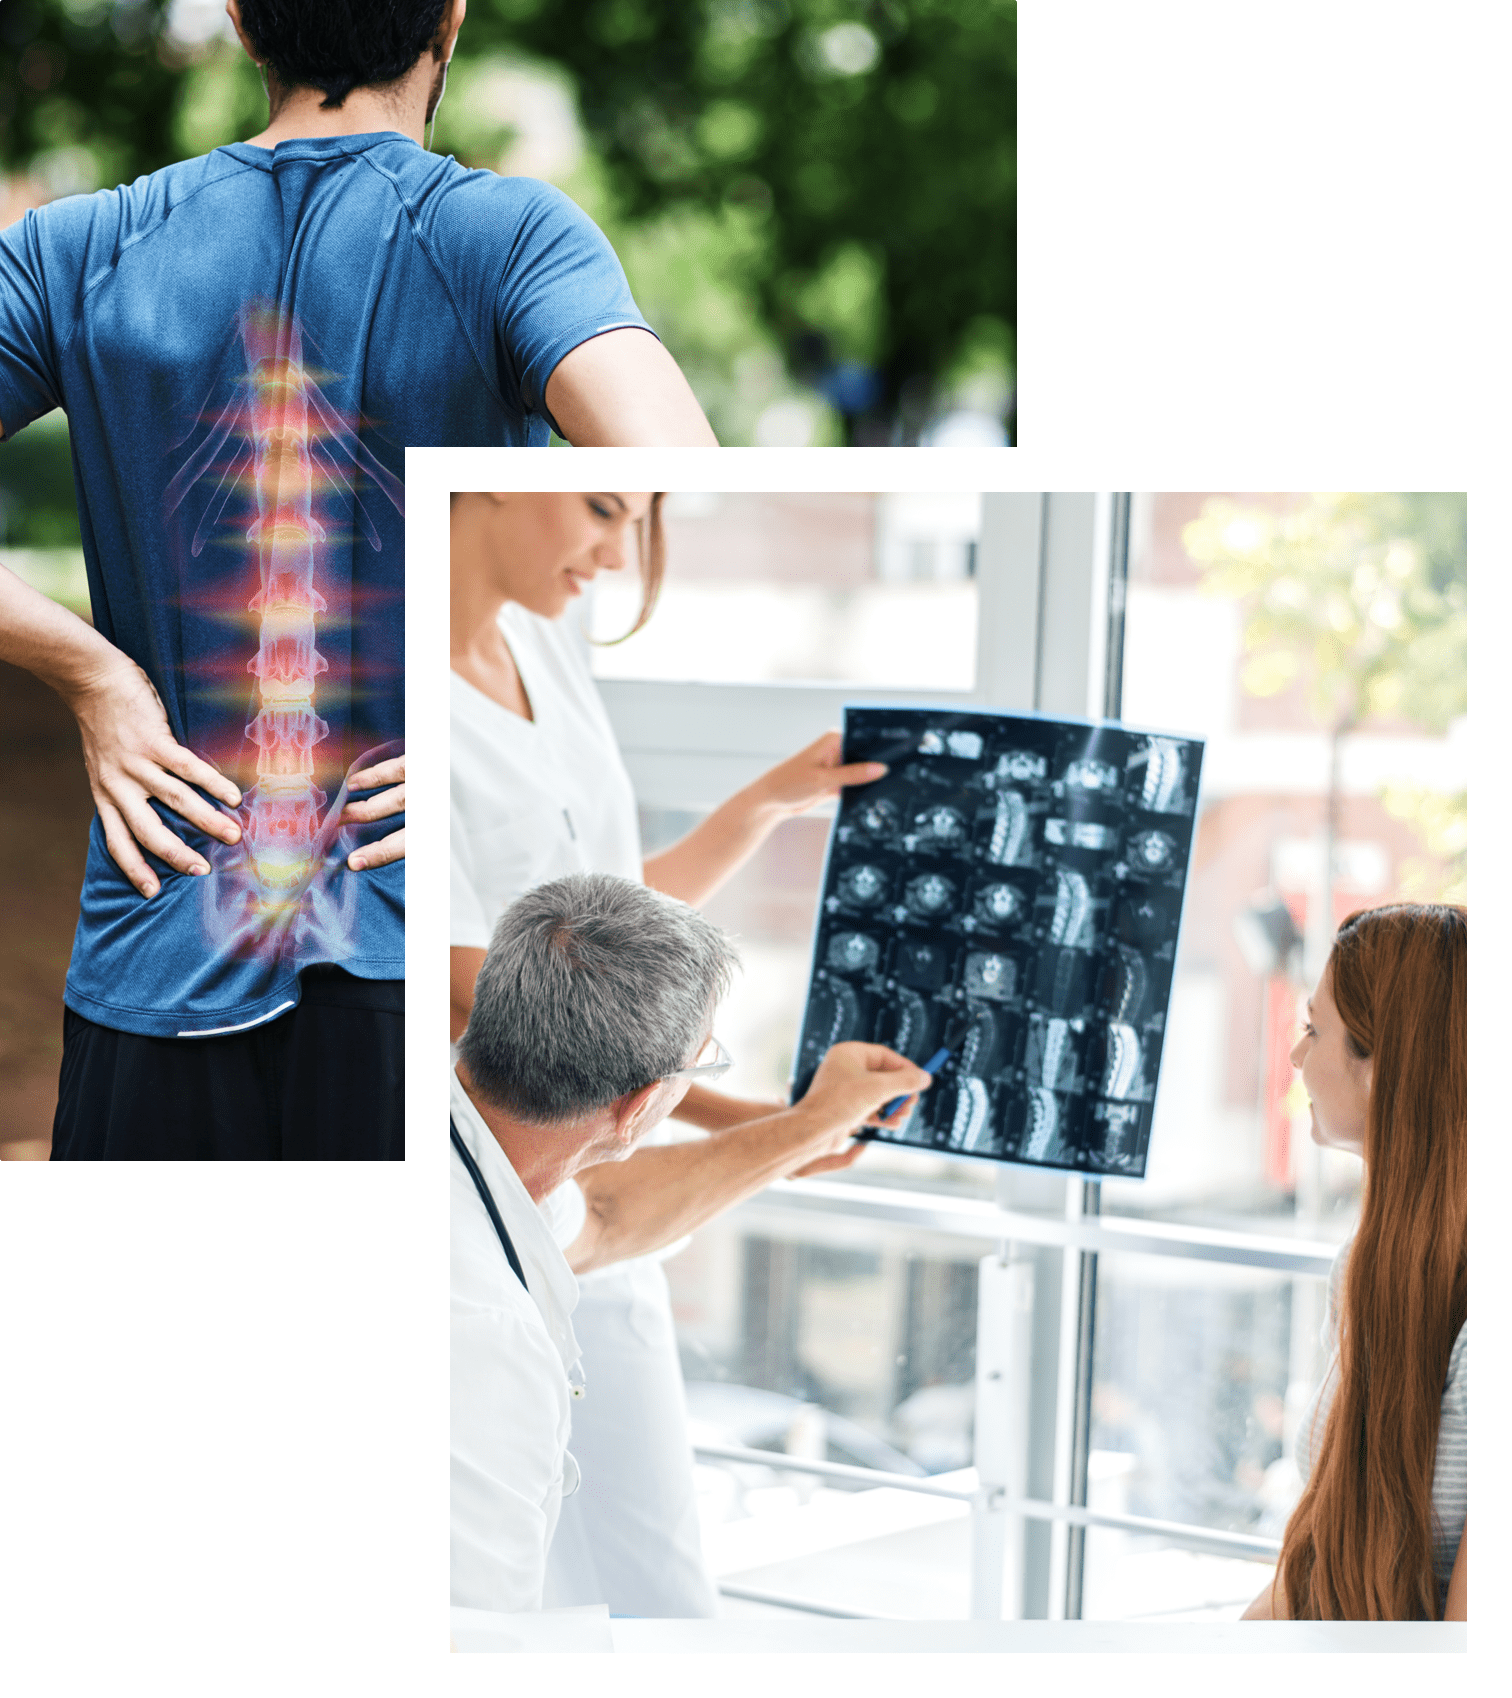 Two chirospot experts explaining a patient's x-ray to her